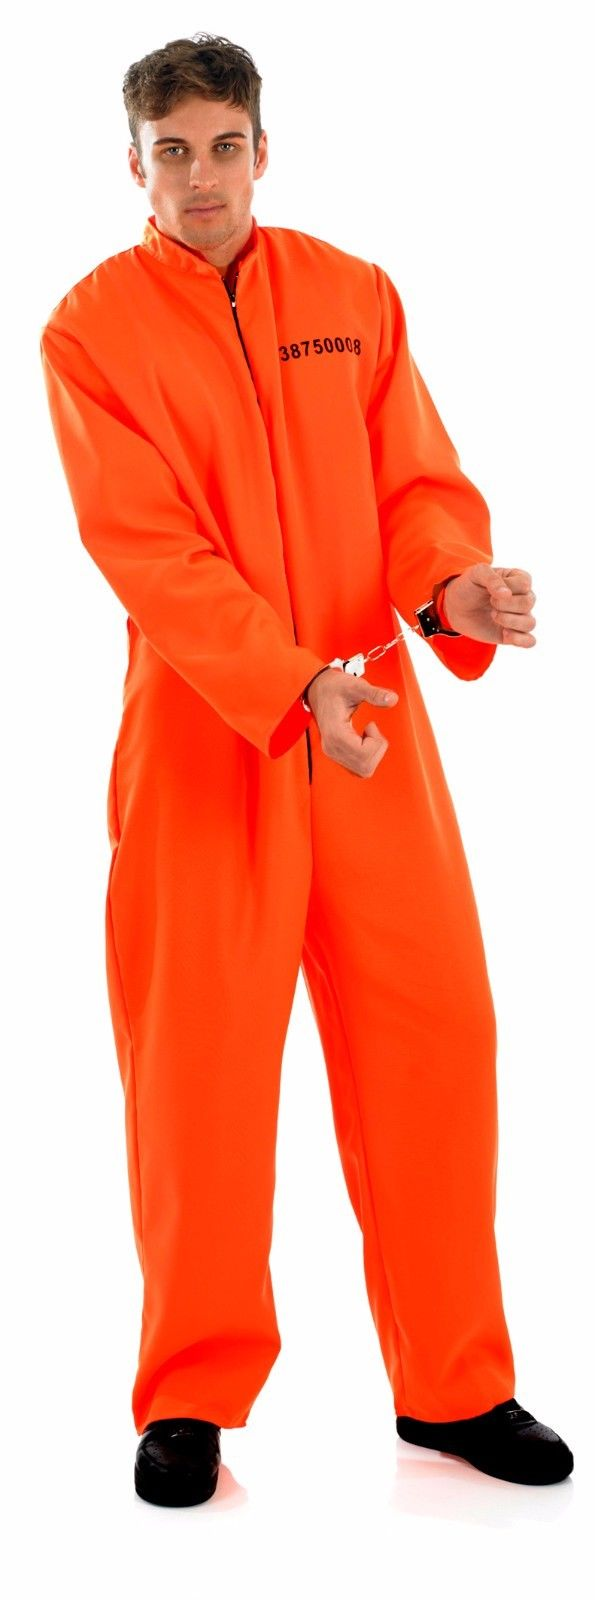 ... ADULT MENS PRISONER COSTUME ORANGE DEATH ROW FANCY DRESS HALLOWEEN OUTFIT NEW ...  sc 1 st  Costume Fantastic & ADULT MENS PRISONER COSTUME ORANGE DEATH ROW FANCY DRESS HALLOWEEN ...